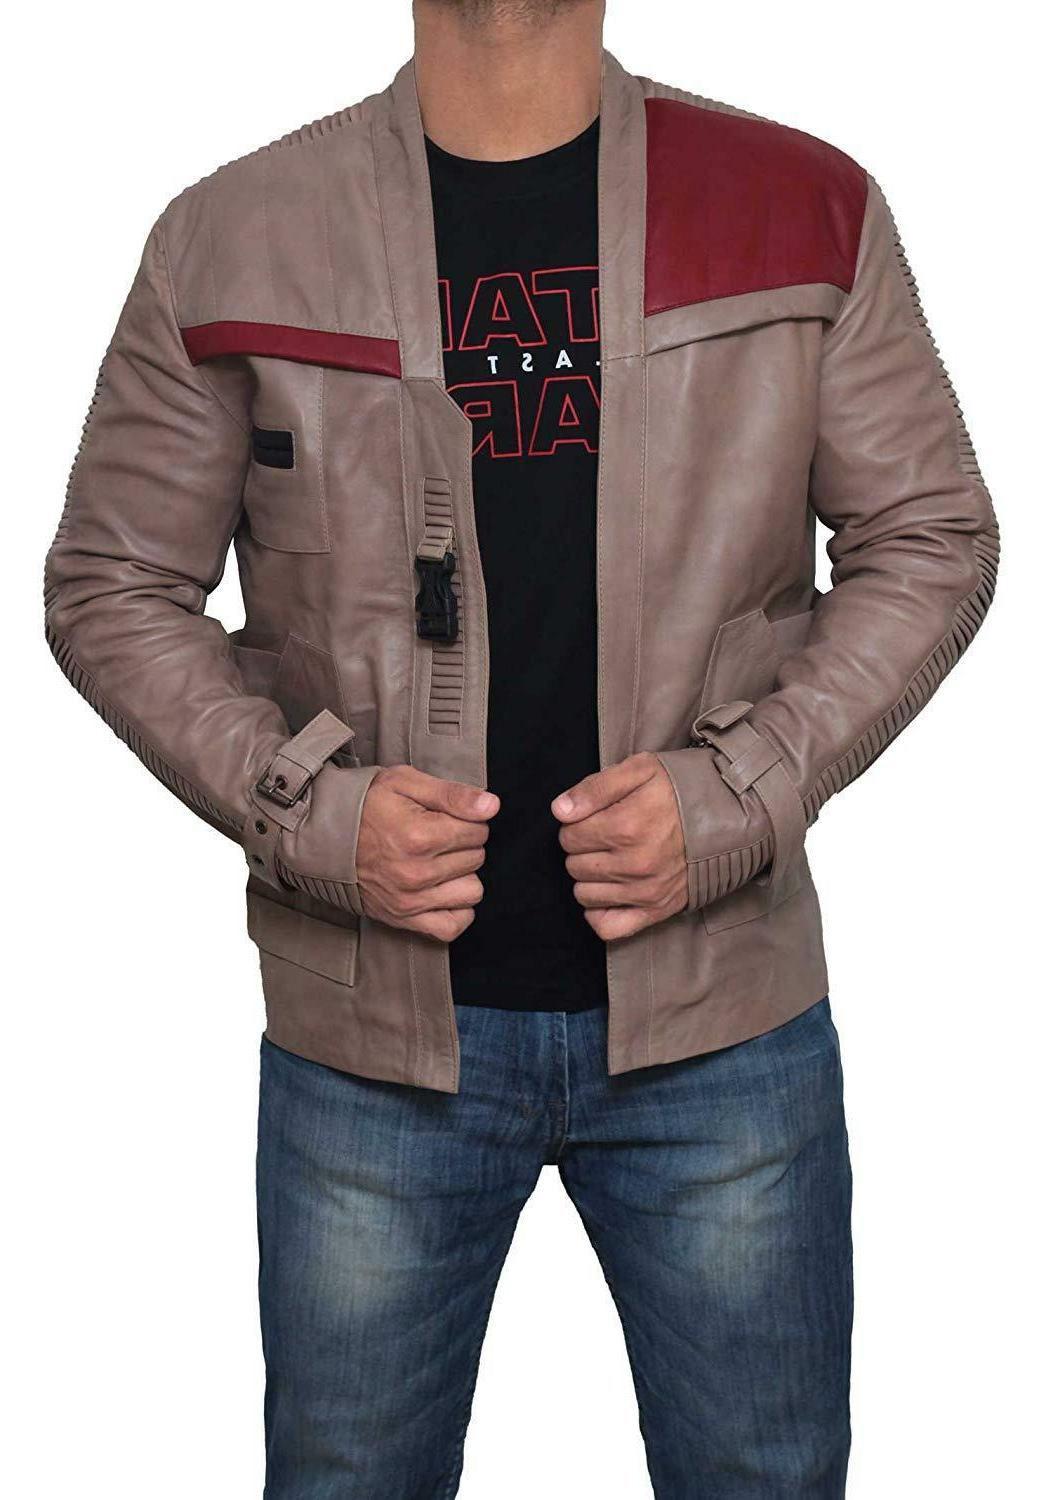 cayon mens halloween leather jackets and coat